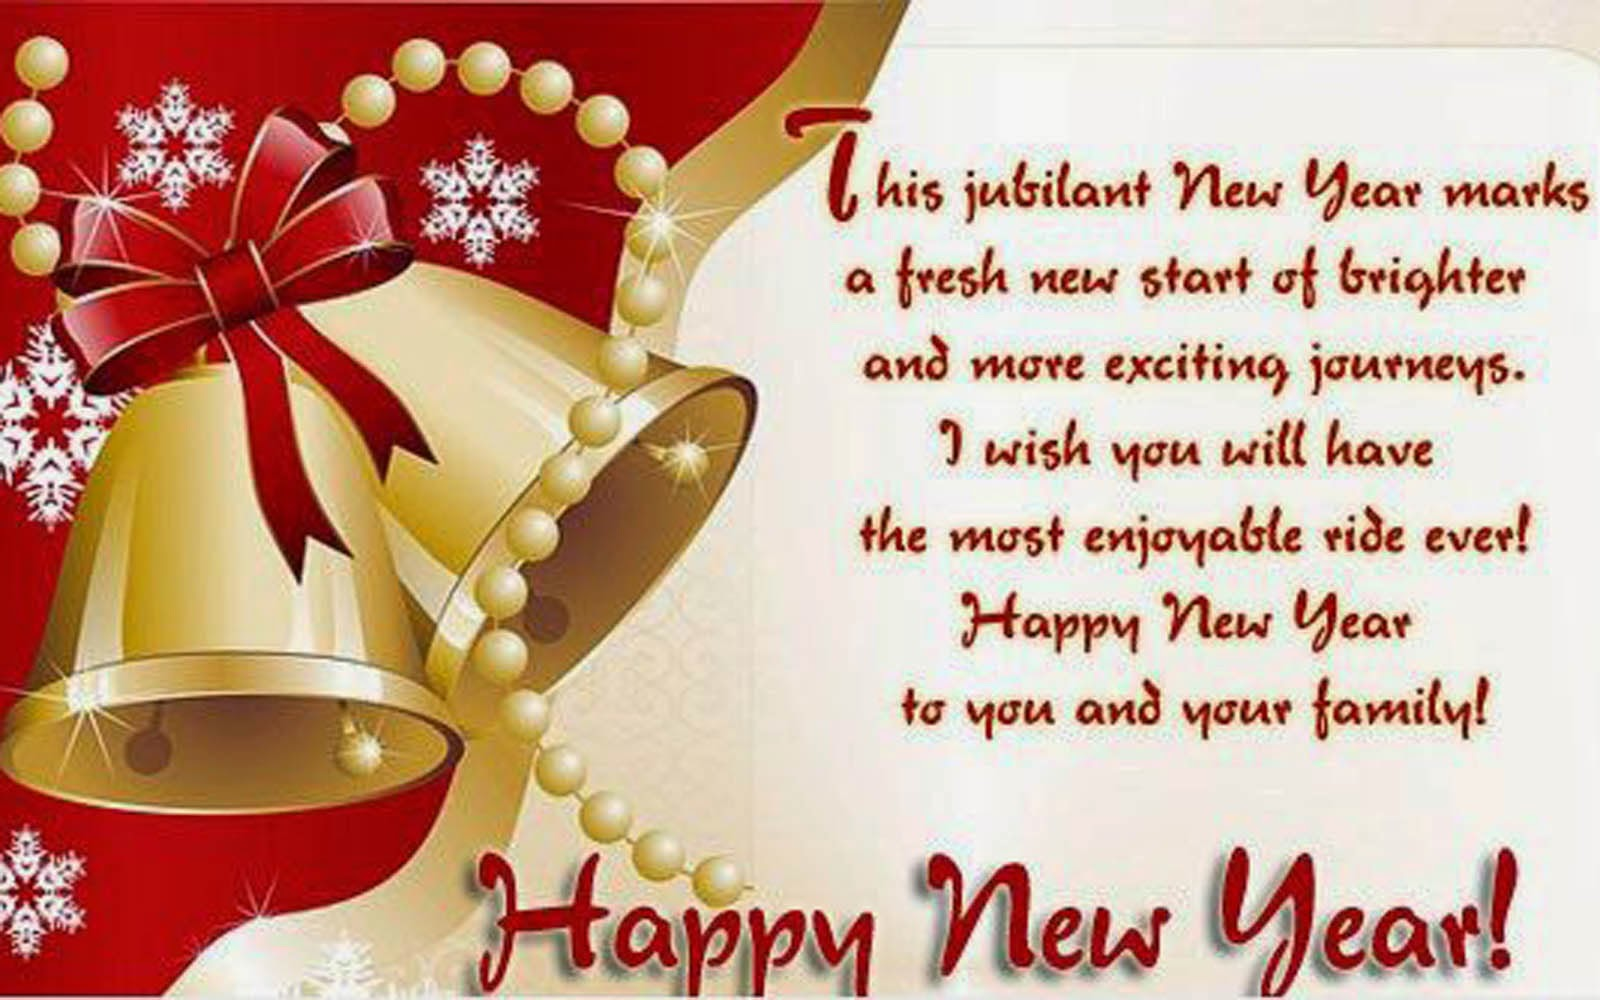 Happy new year greetings hd wallpapers happy new year best greetings happy new year greeting cards happy new year greeting wallpapers happy new year greeting photos happy new year greeting kristyandbryce Gallery